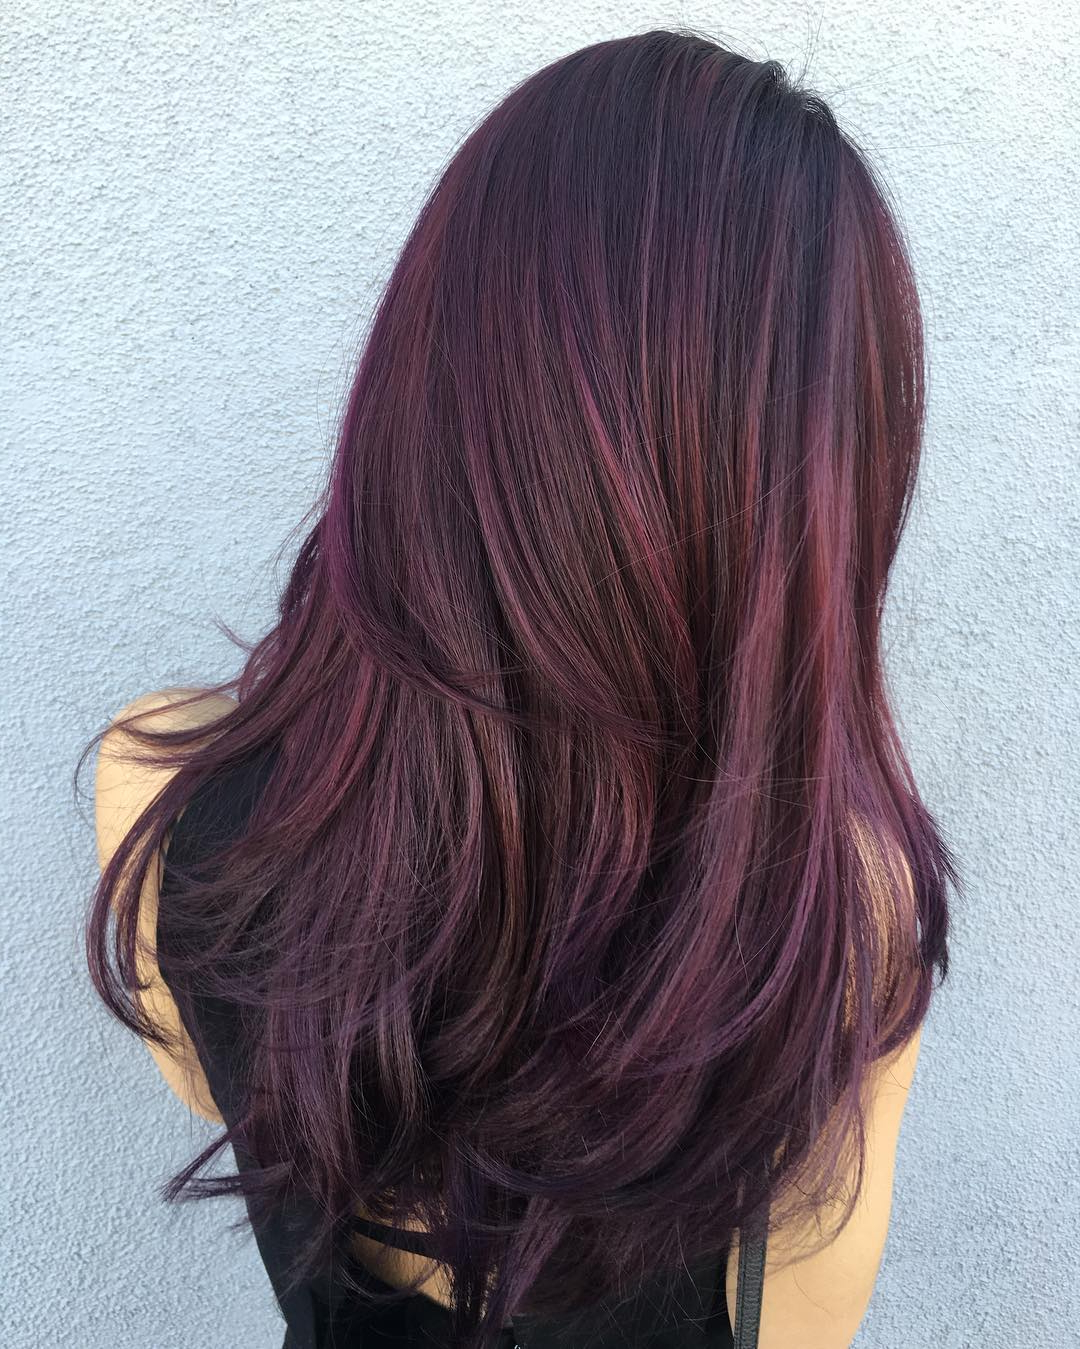 50 Shades Of Burgundy Hair: Dark, Maroon, Red Wine, Red Violet For Burgundy Short Hairstyles (View 16 of 25)